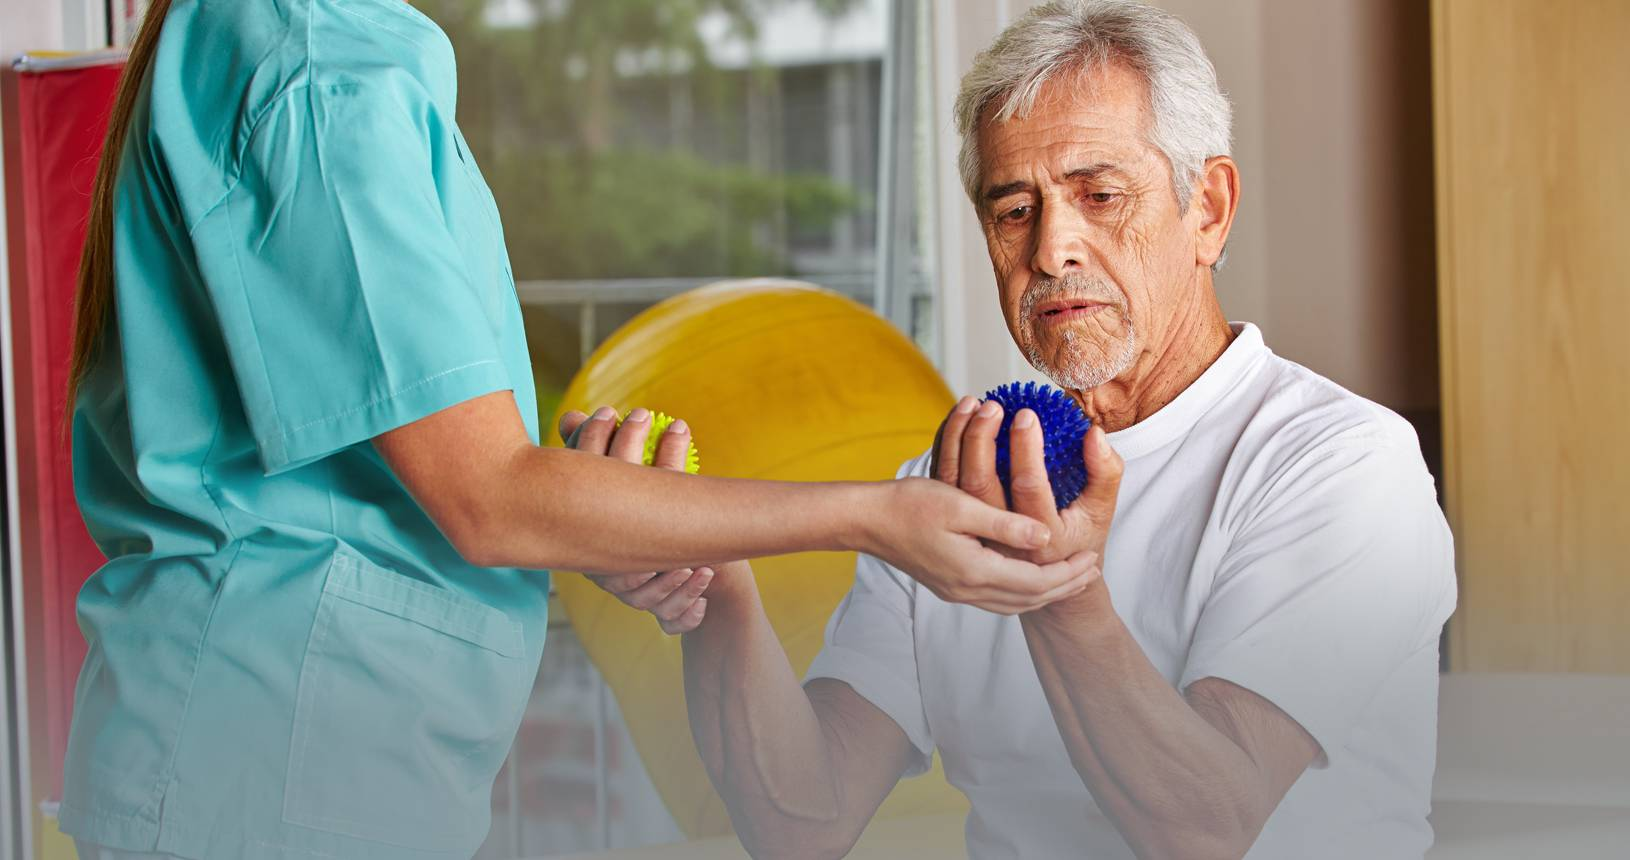 5 Things to Know About Hand Therapy and Rehabilitation